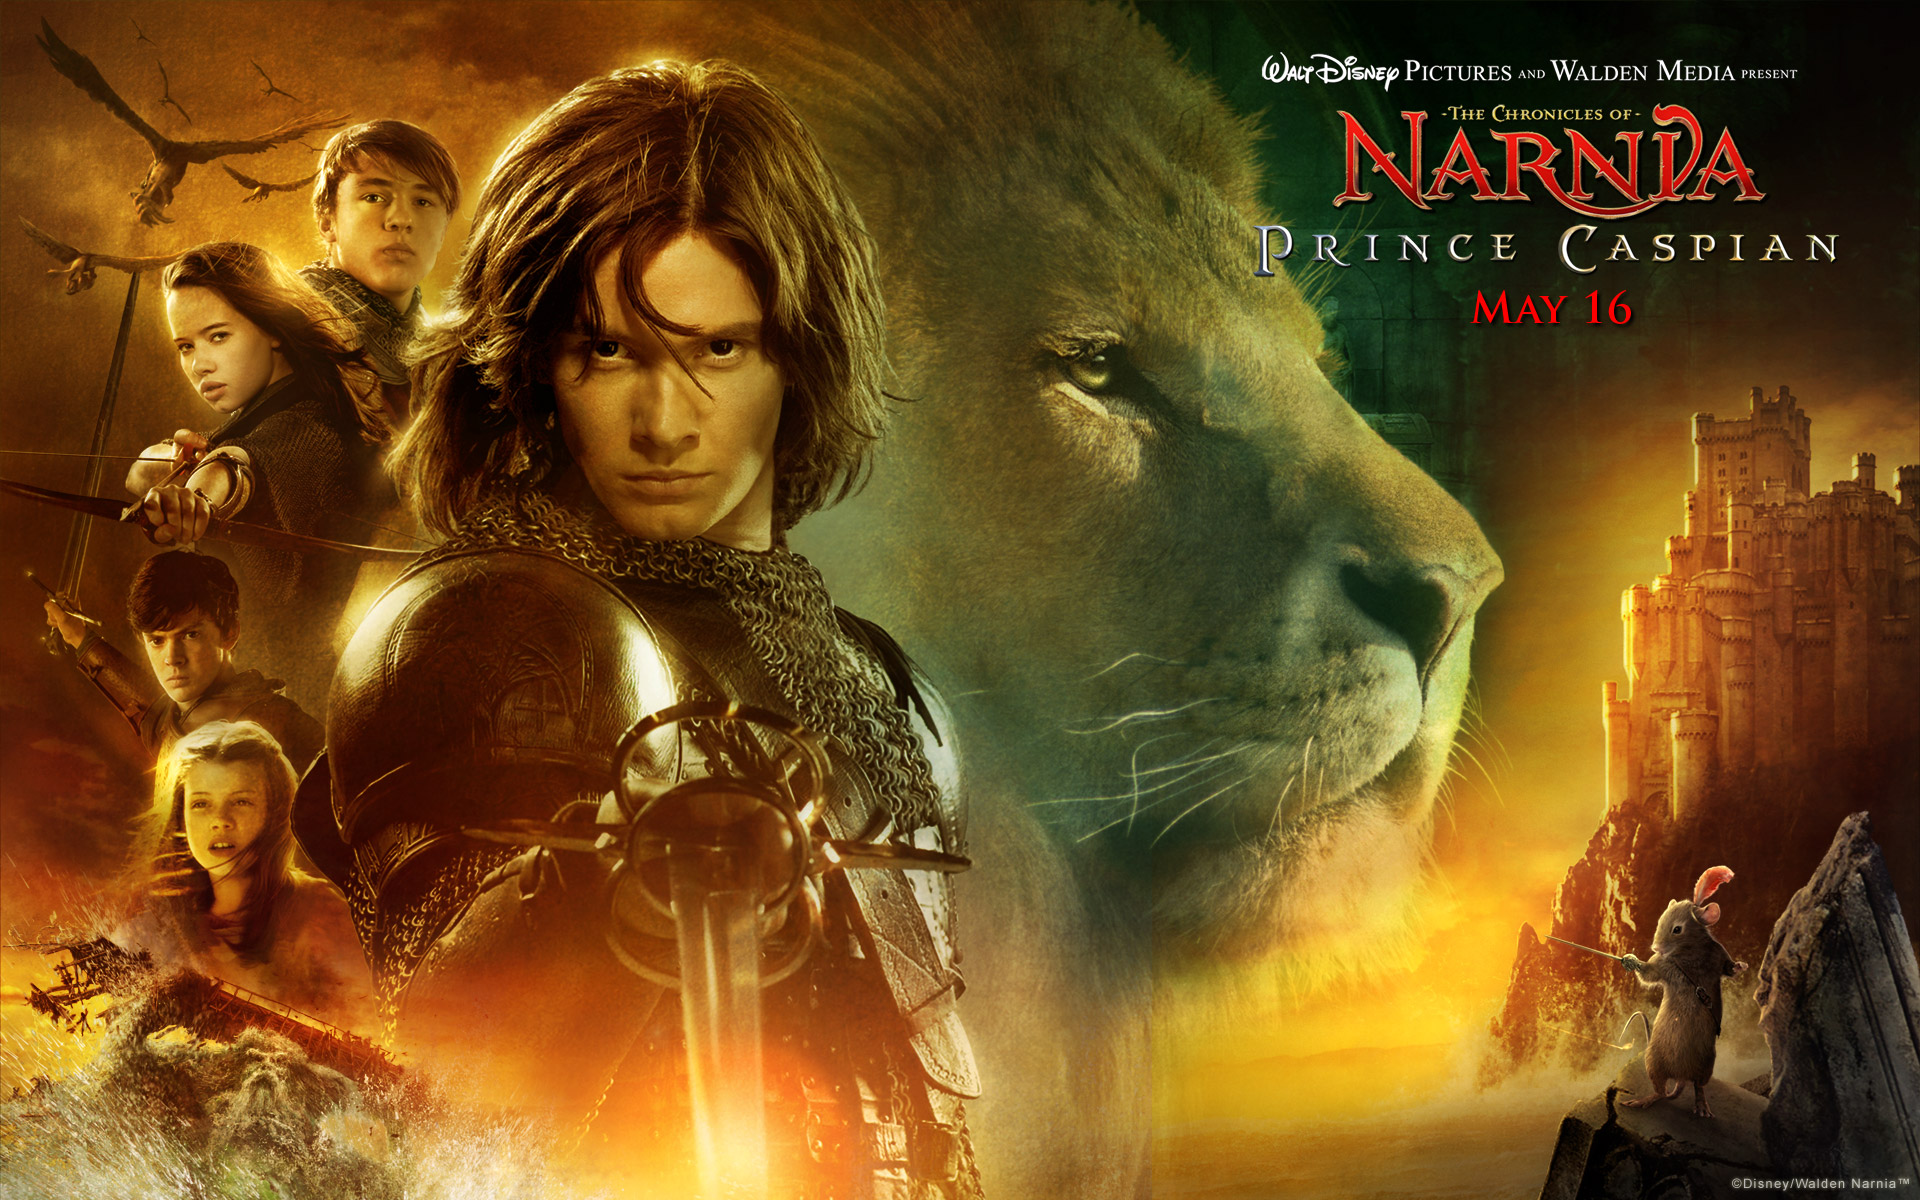 prince caspian from the chronicles of narnia movie desktop